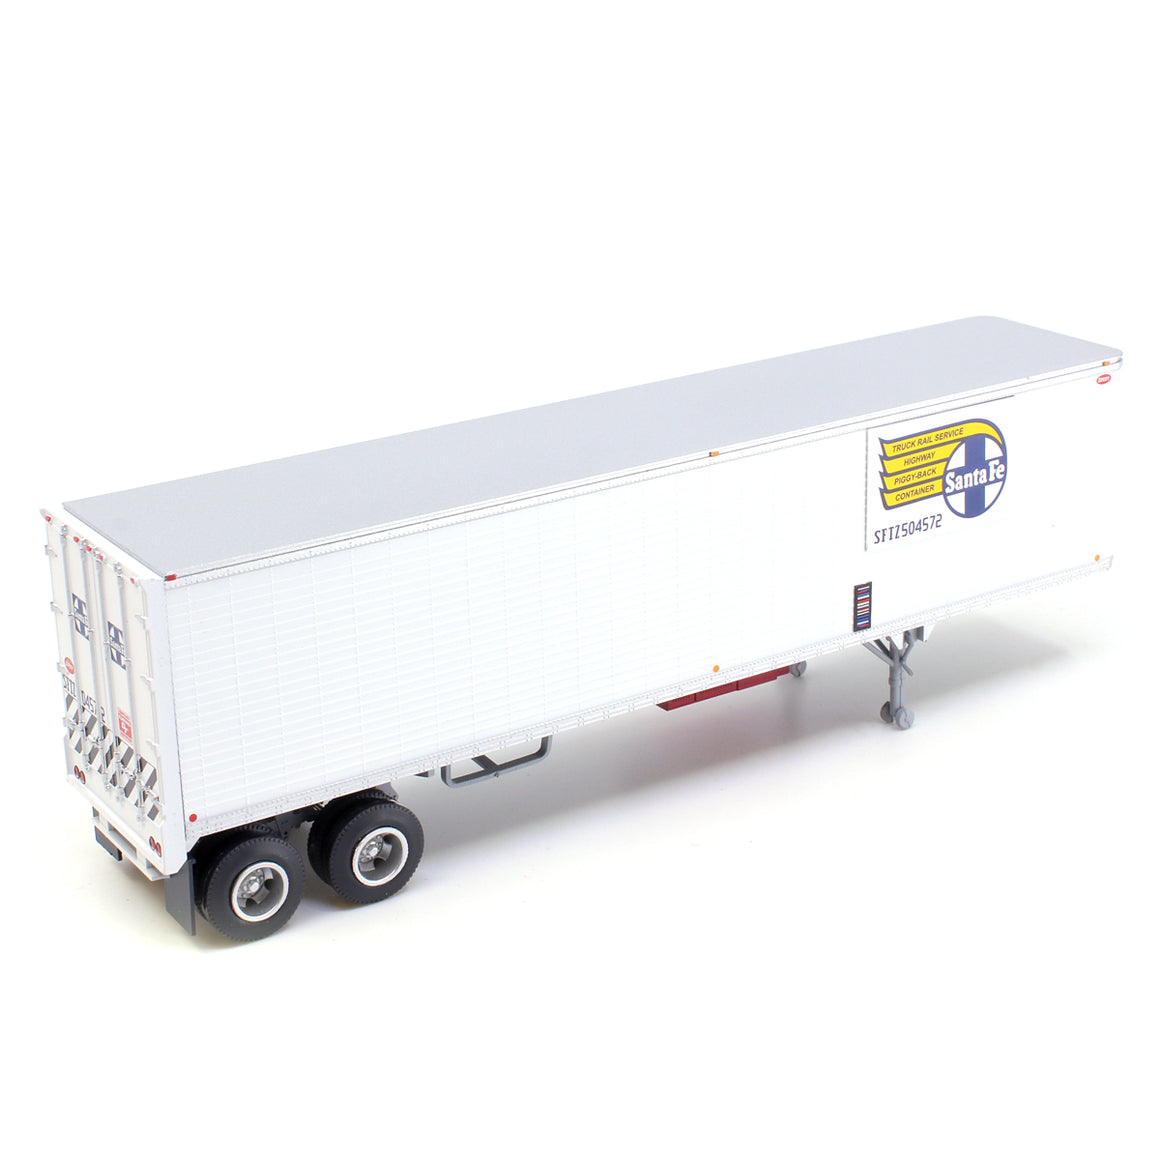 HO Scale: 40' Corrugated Semi Trailer - Santa Fe